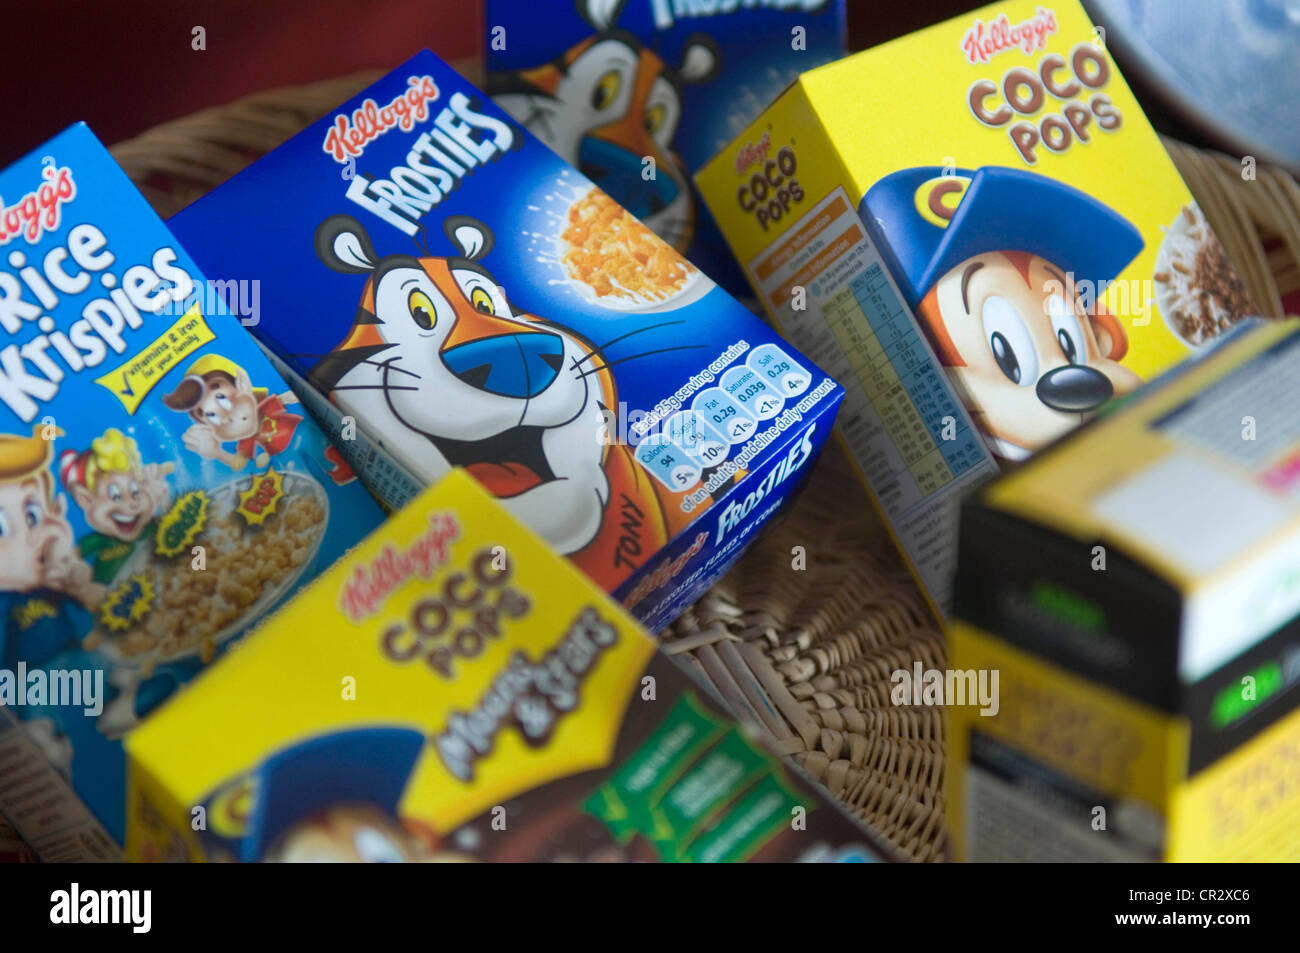 Coco Pops Cereal Uk Stock Photos Coco Pops Cereal Uk Stock Images